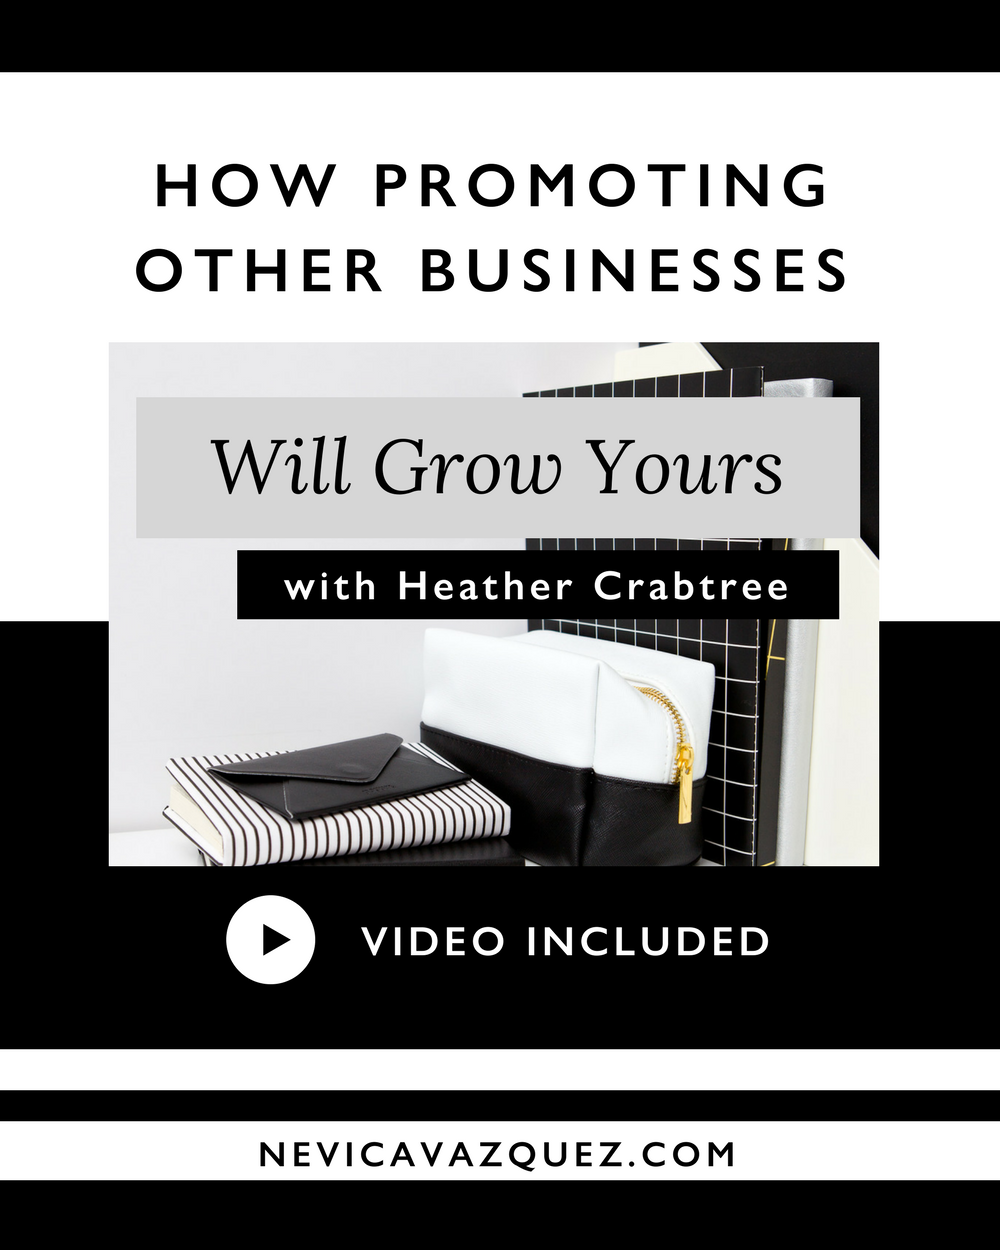 How Promoting Other Businesses Will Grow Yours - Heather Crabtree